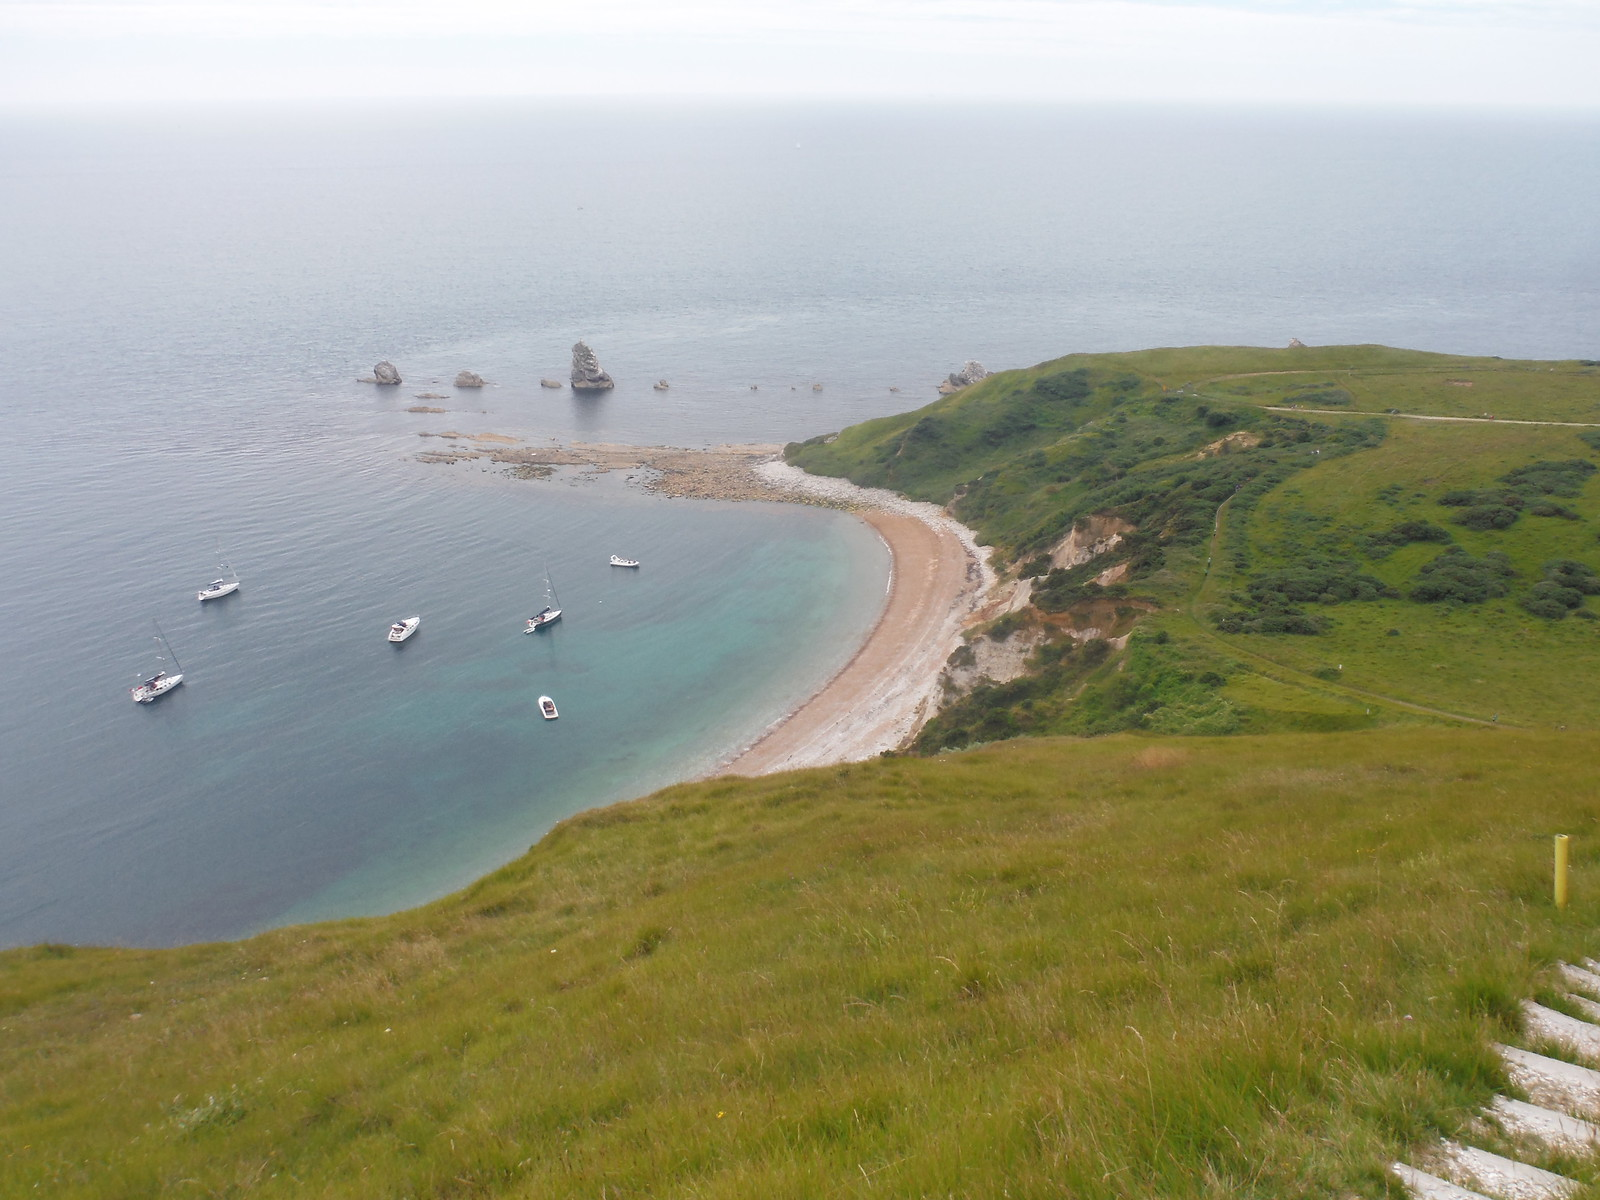 Mupe Bay from path up Bindon Hill SWC Walk 54 - Lulworth Cove Circular (via Tyneham and Durdle Door)